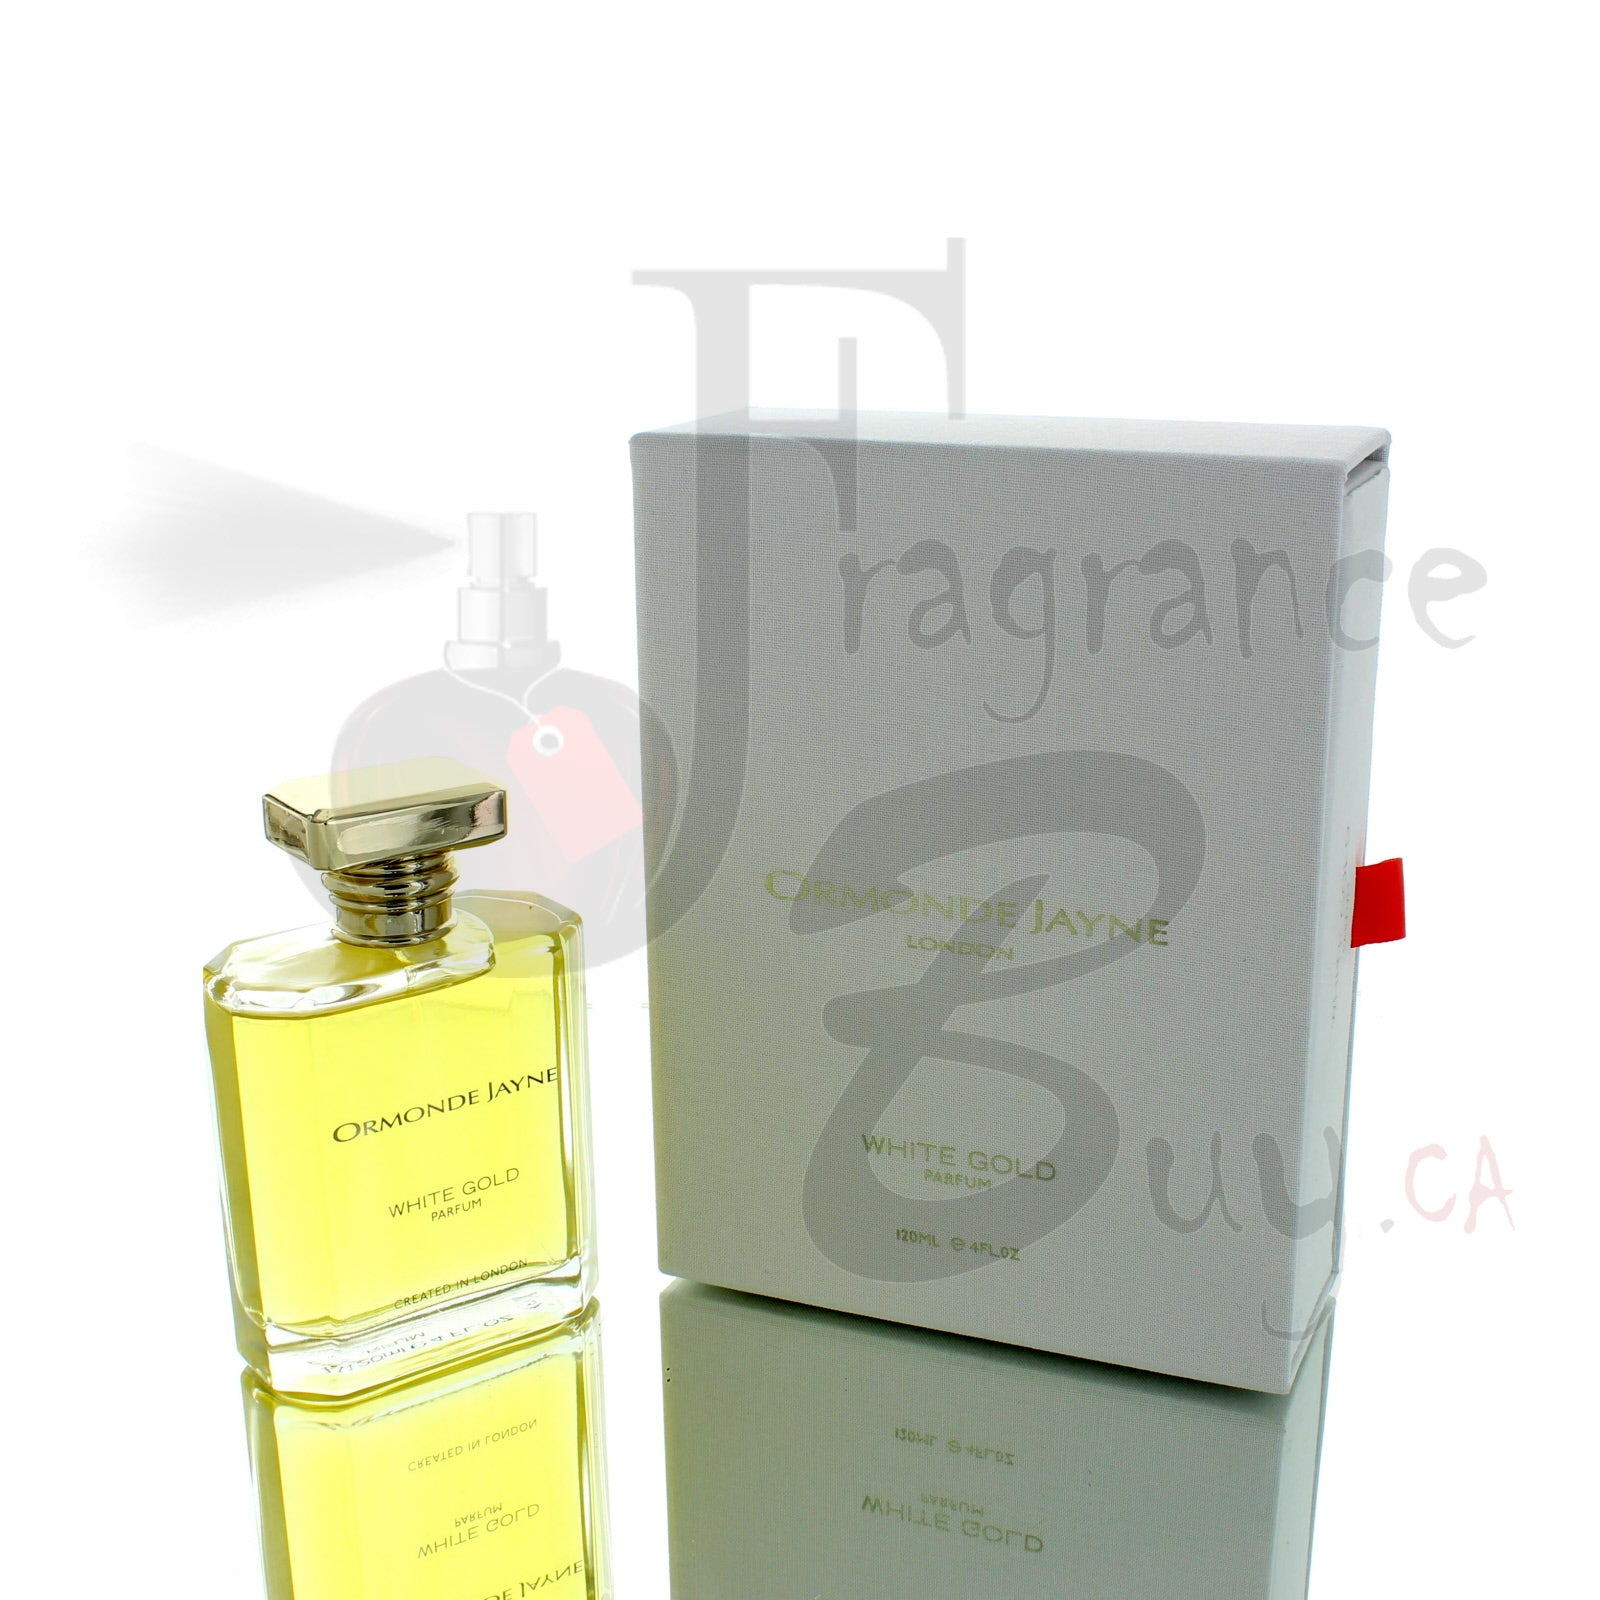 Ormonde Jayne White Gold For Man/Woman